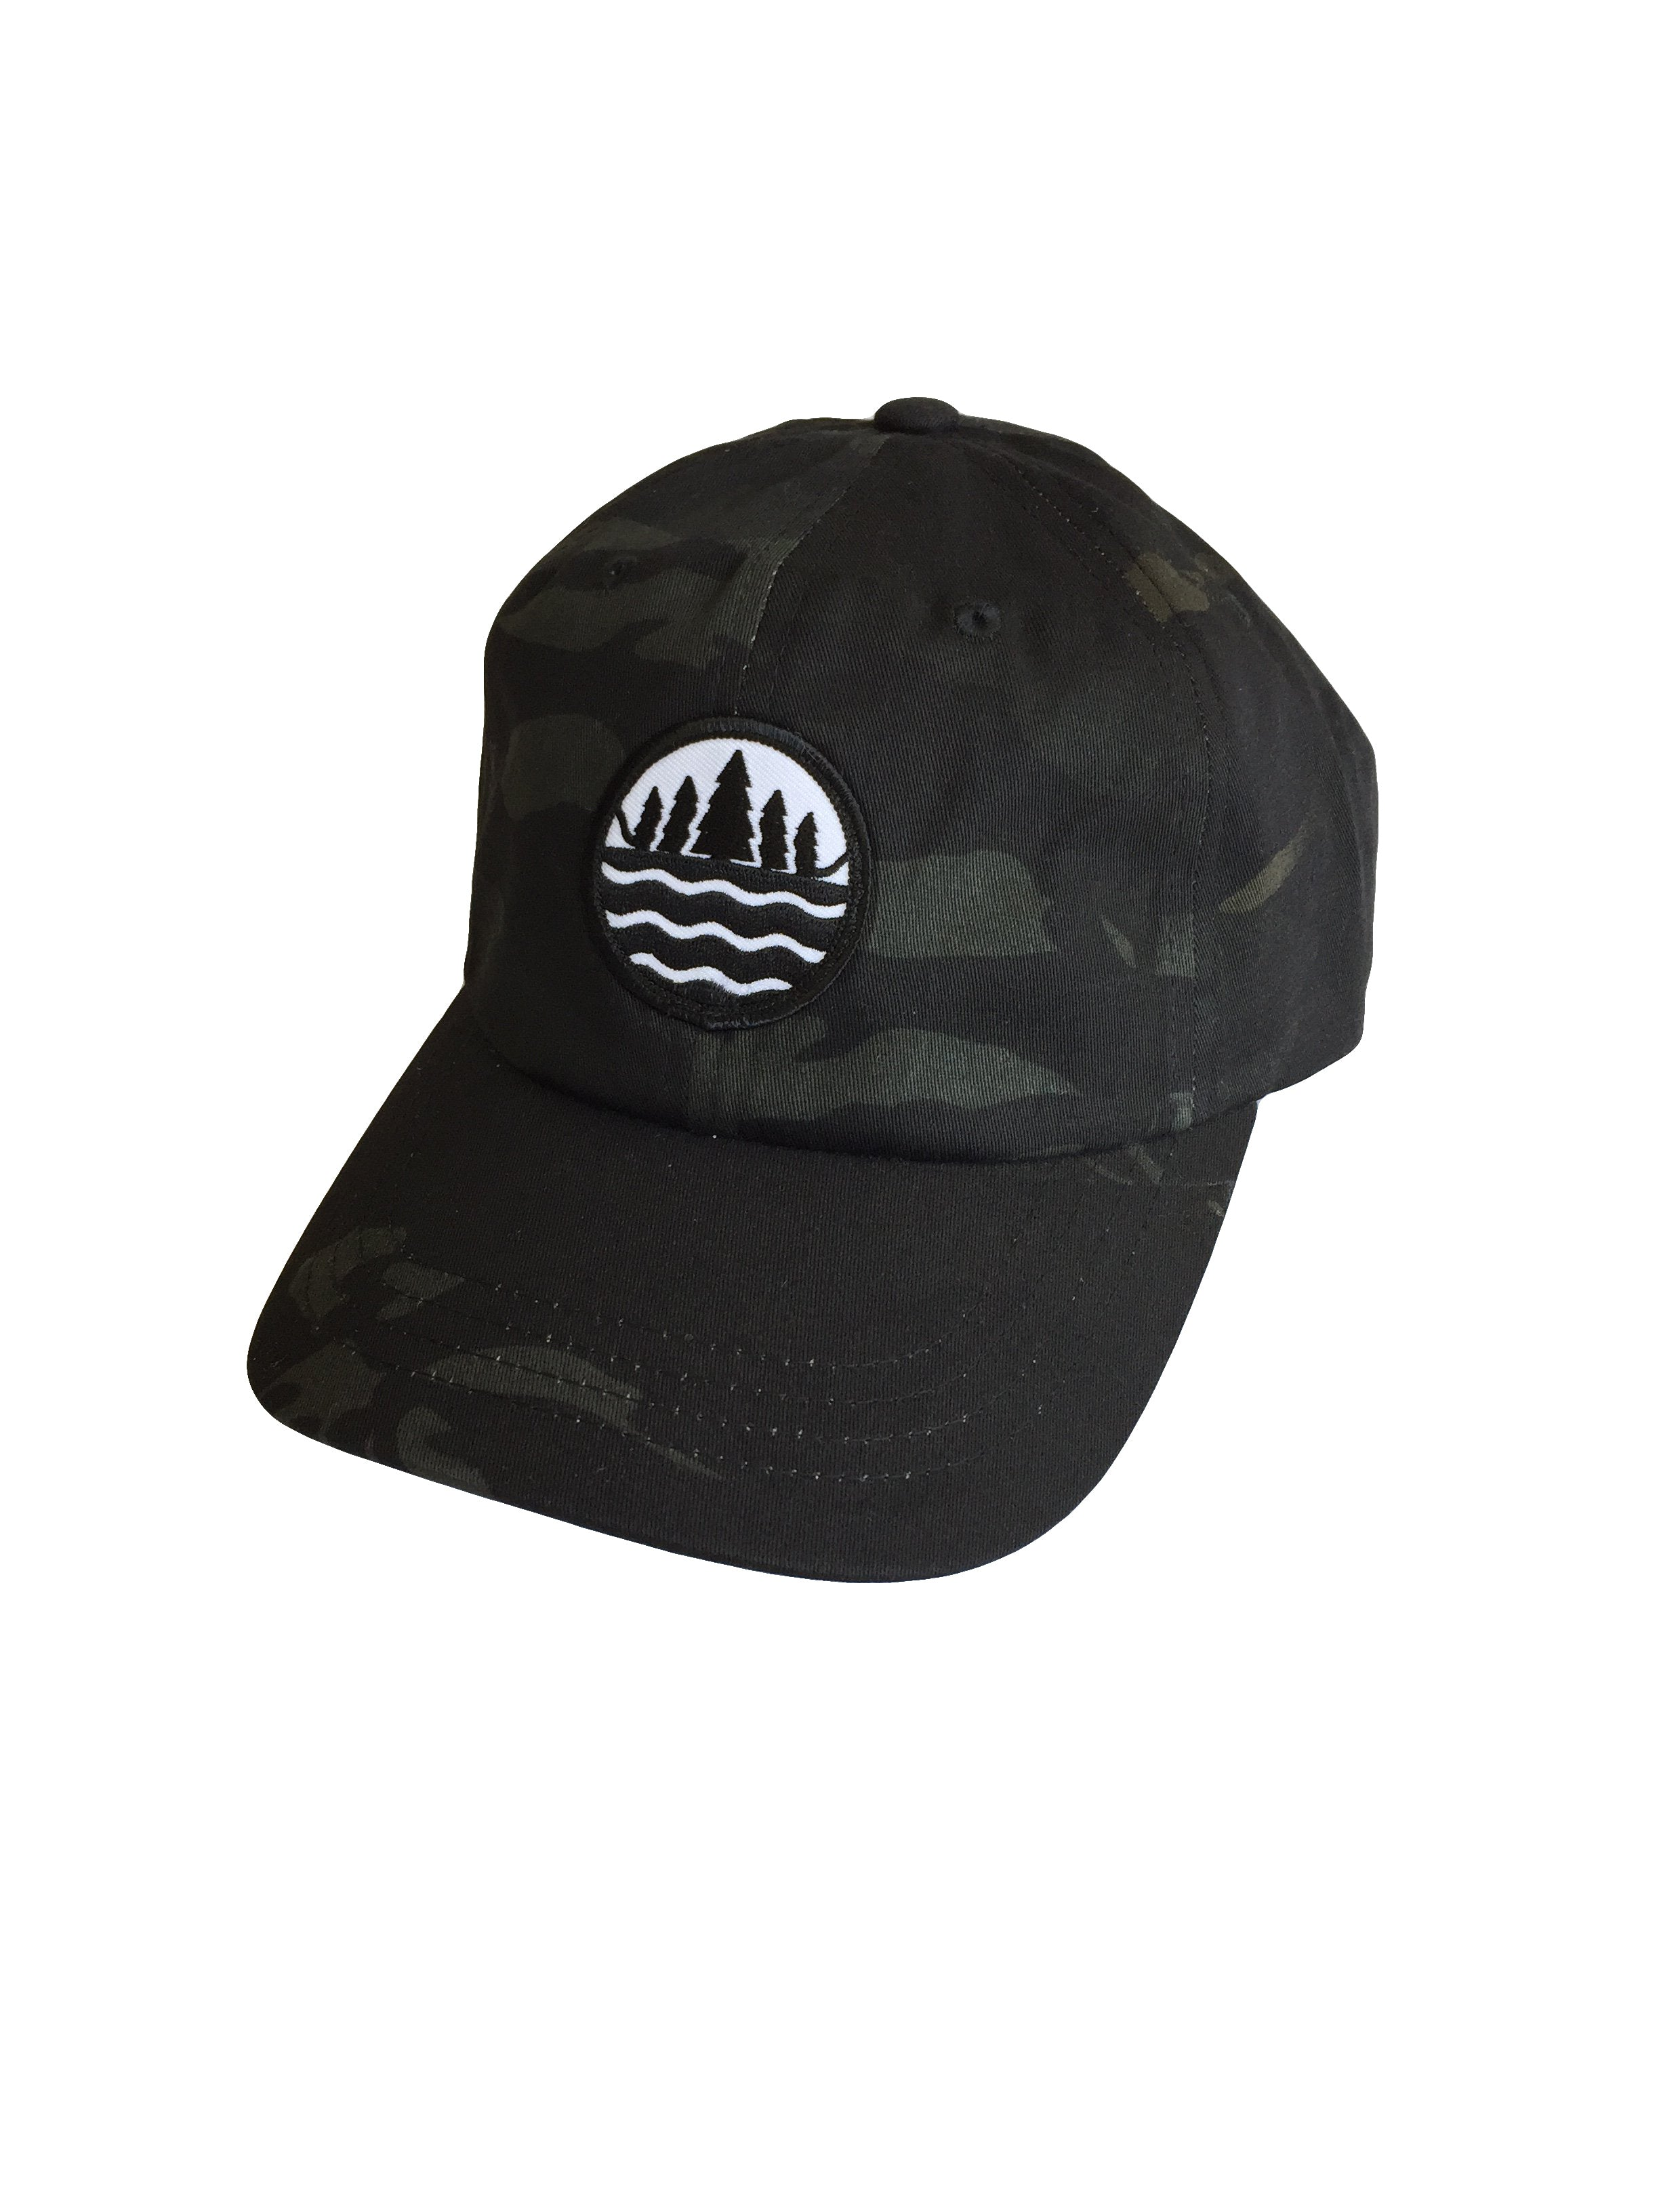 TGLS black low profile Multicam camo cap - The Great Lakes State